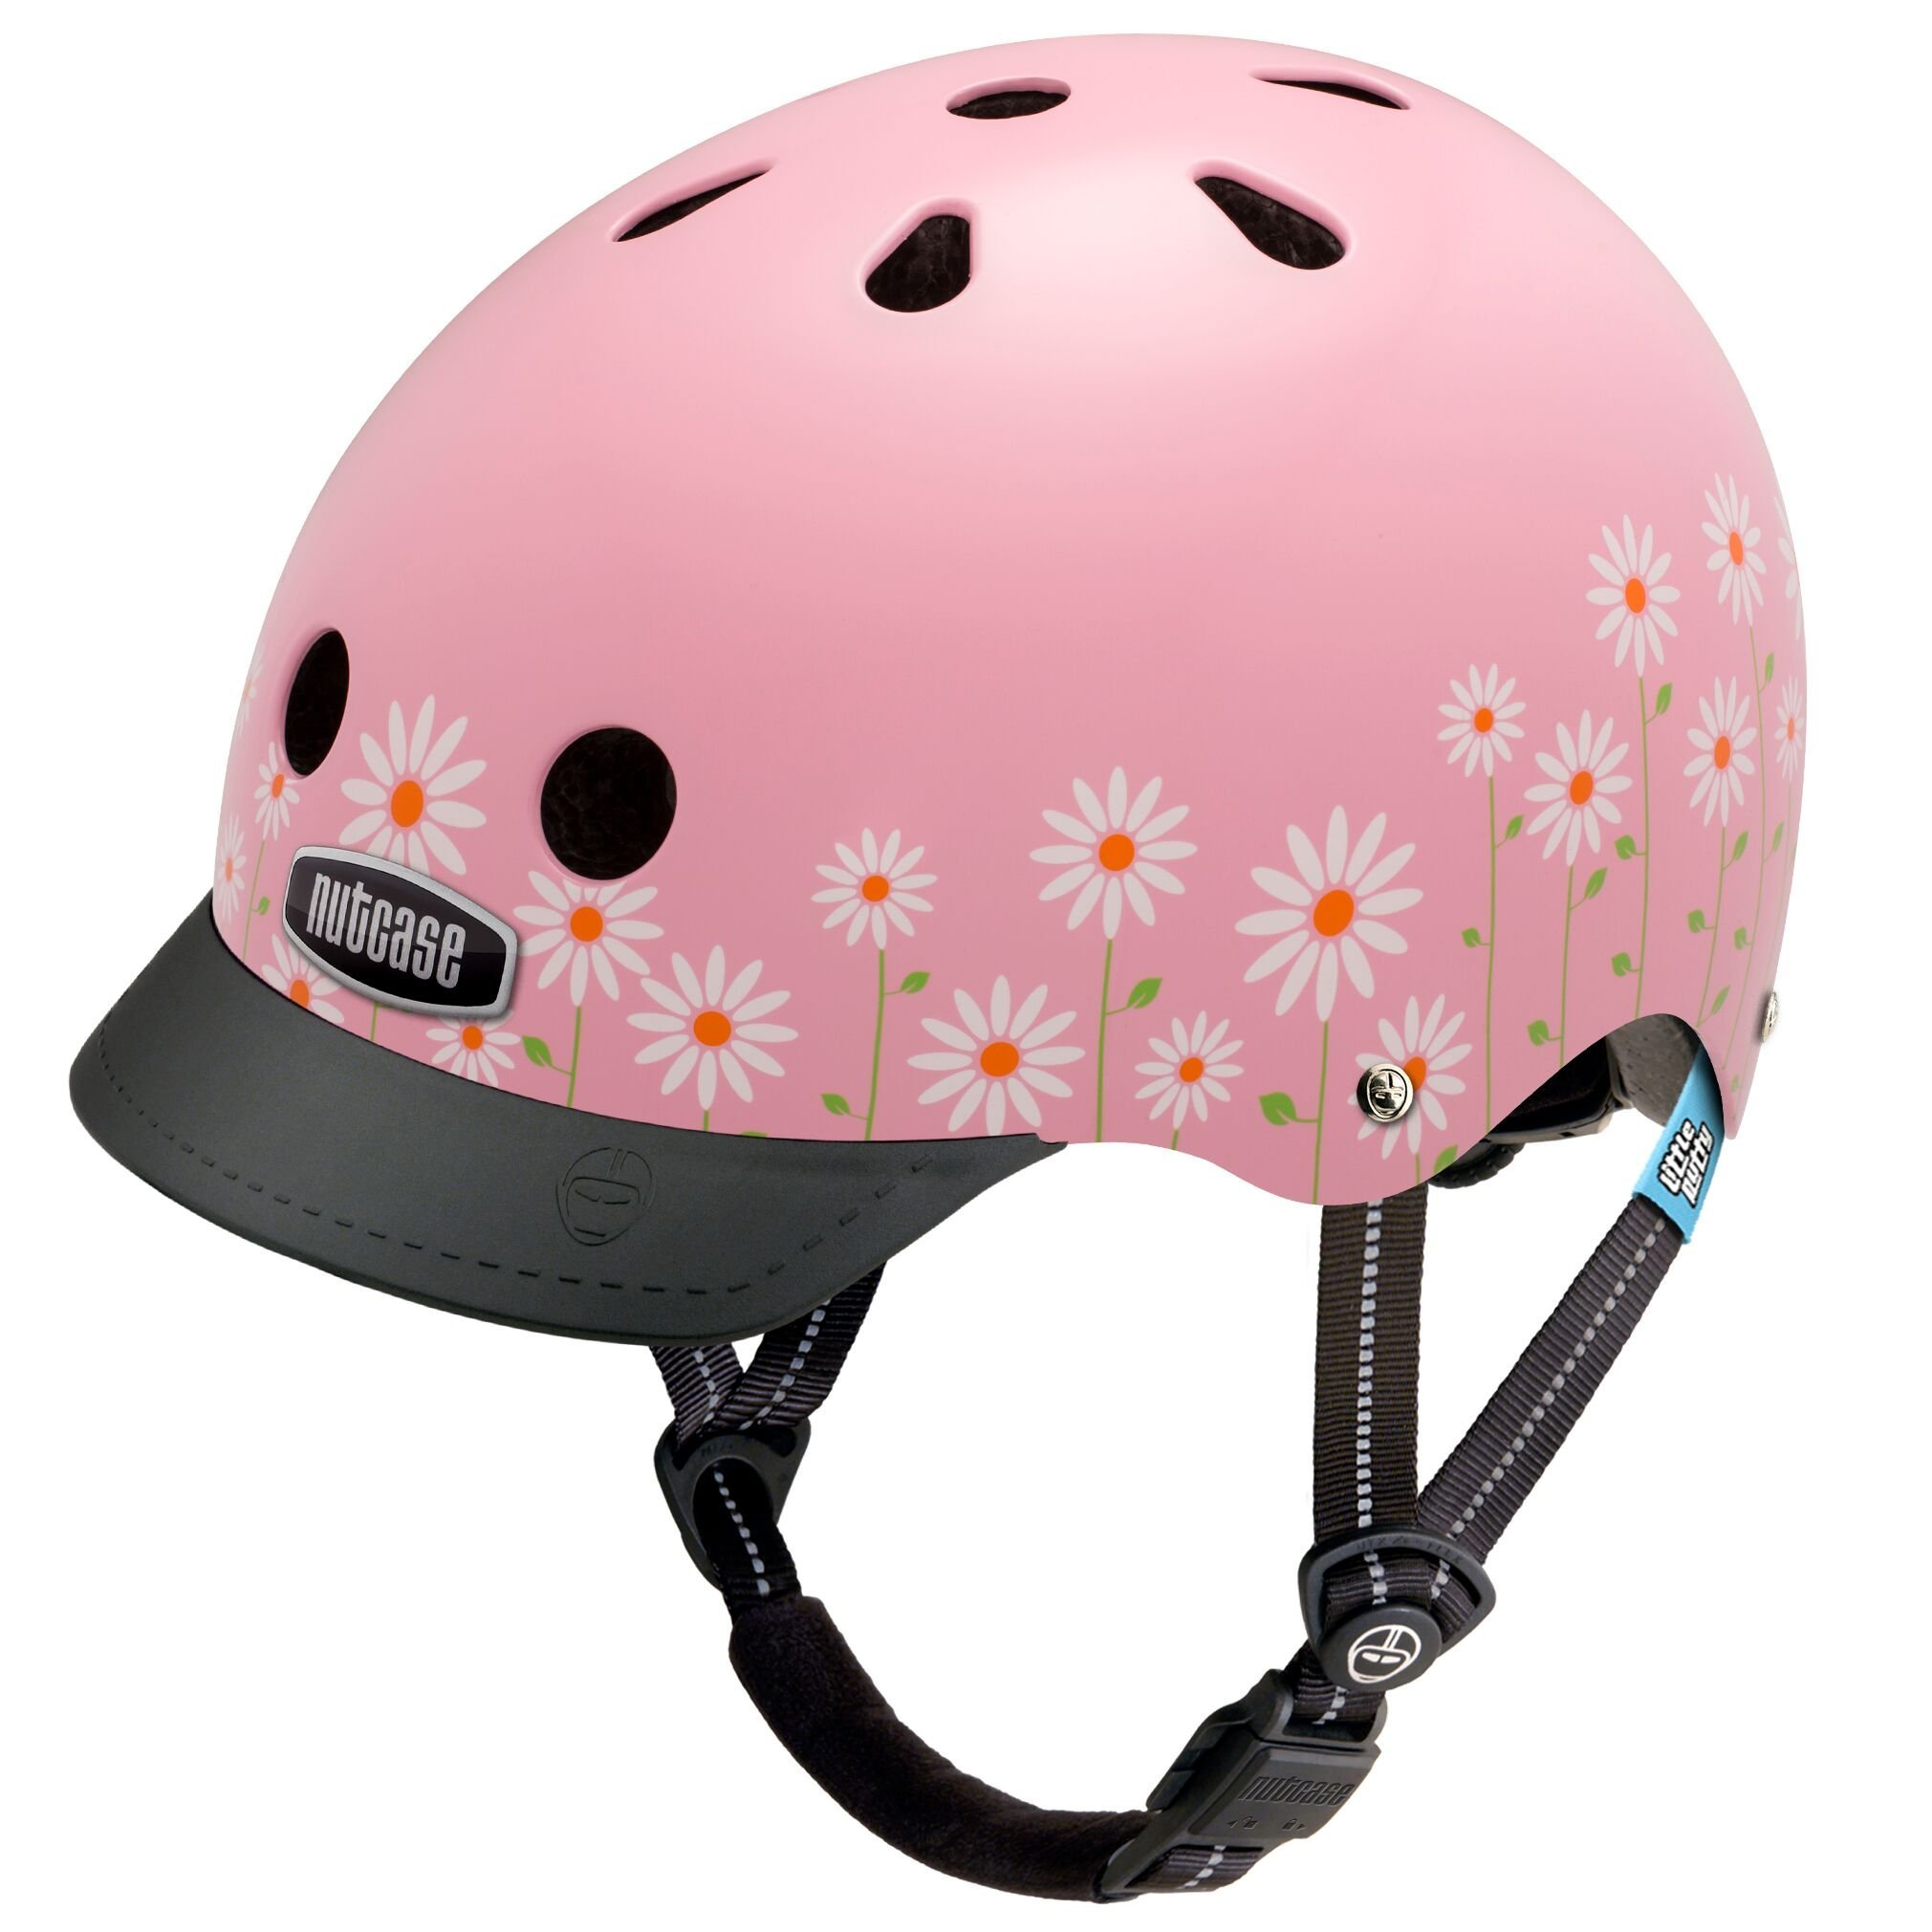 Nutcase - Little Nutty Street Bike Helmet, Fits Your Head, Suits Your Soul - Daisy Pink